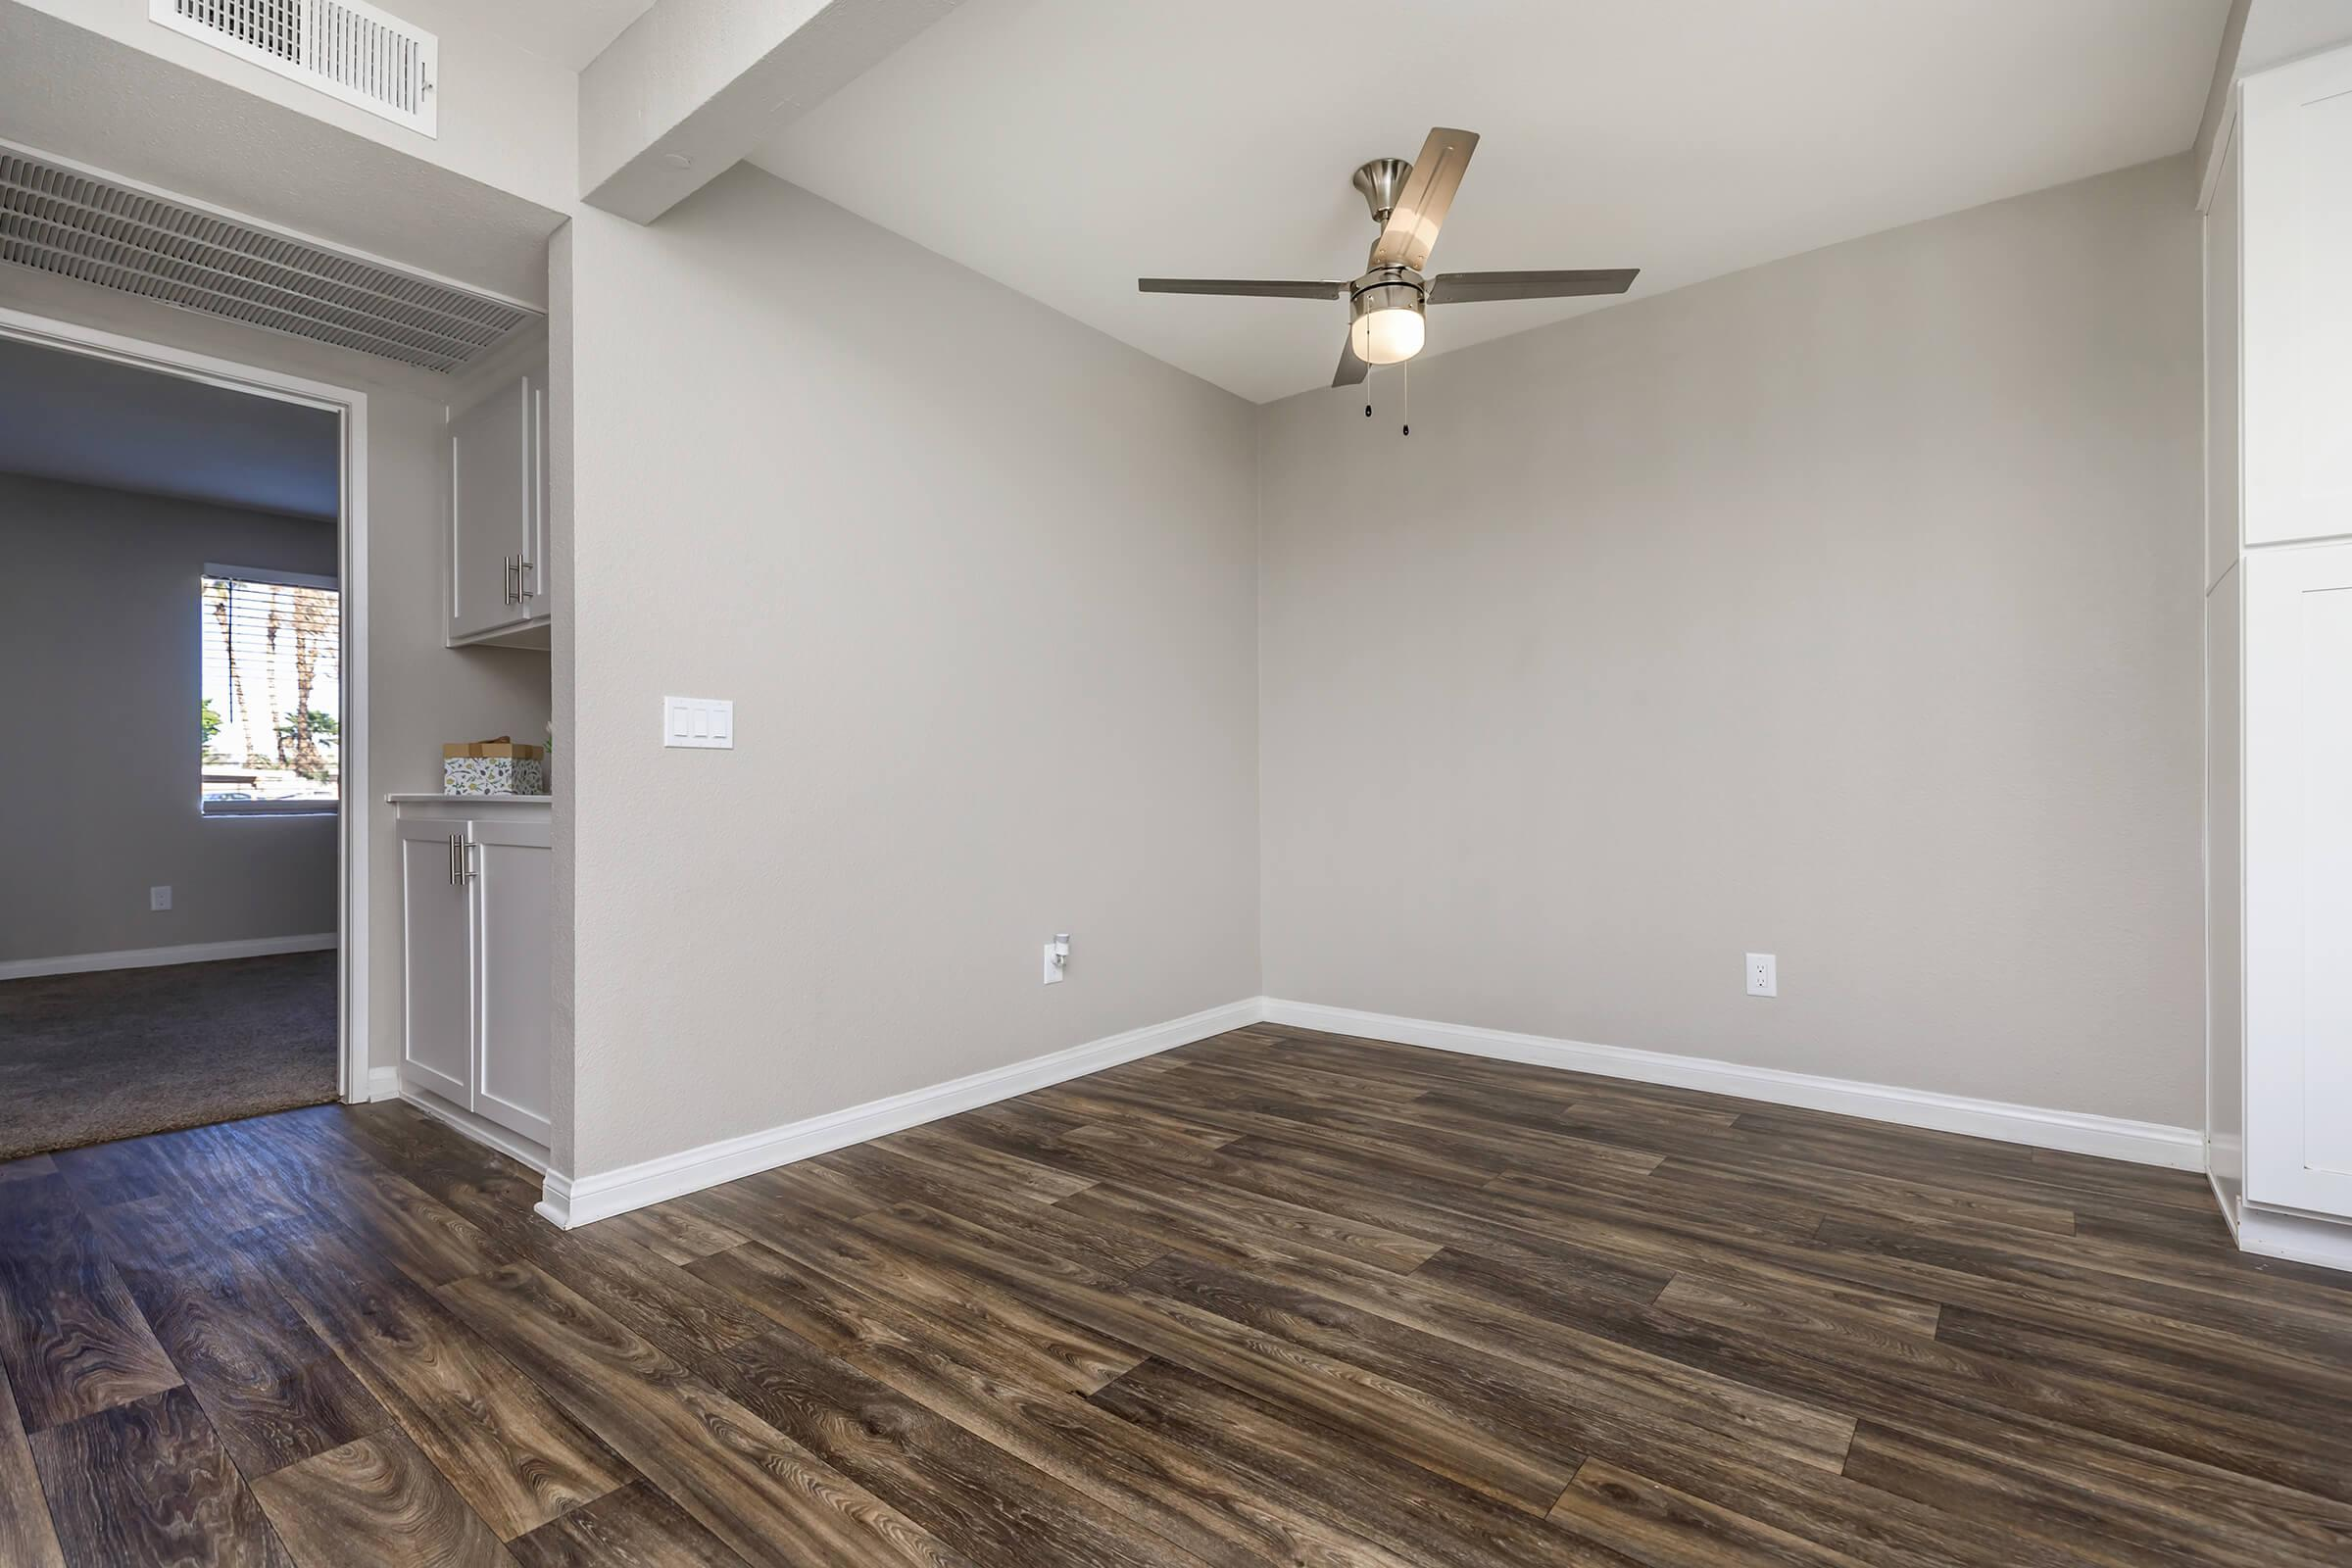 FABULOUS FLOORING AND STORAGE SPACES